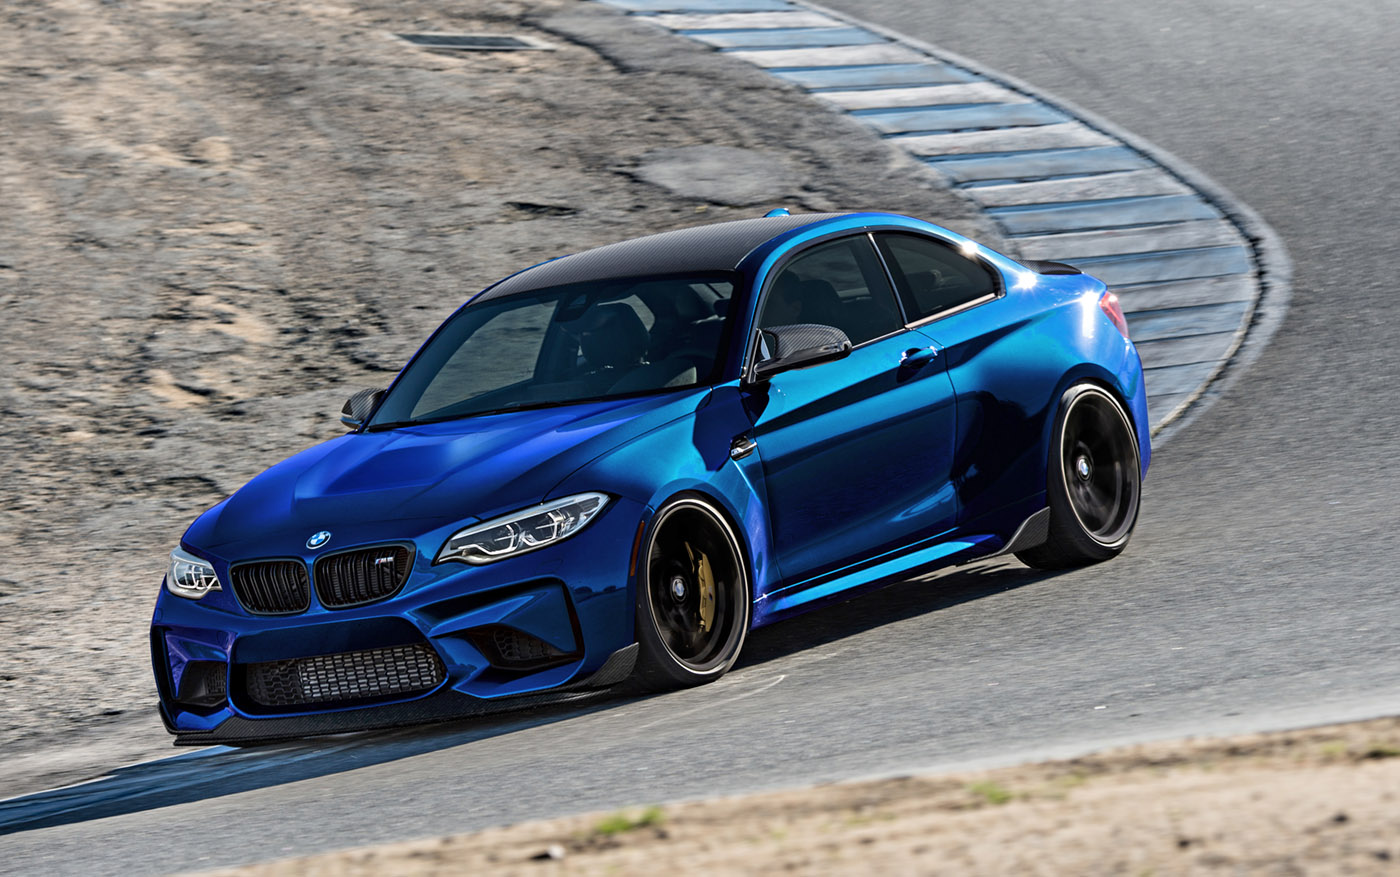 BMW M2 CS coming with 400 HP S55 engine, in 2018 - Page 17